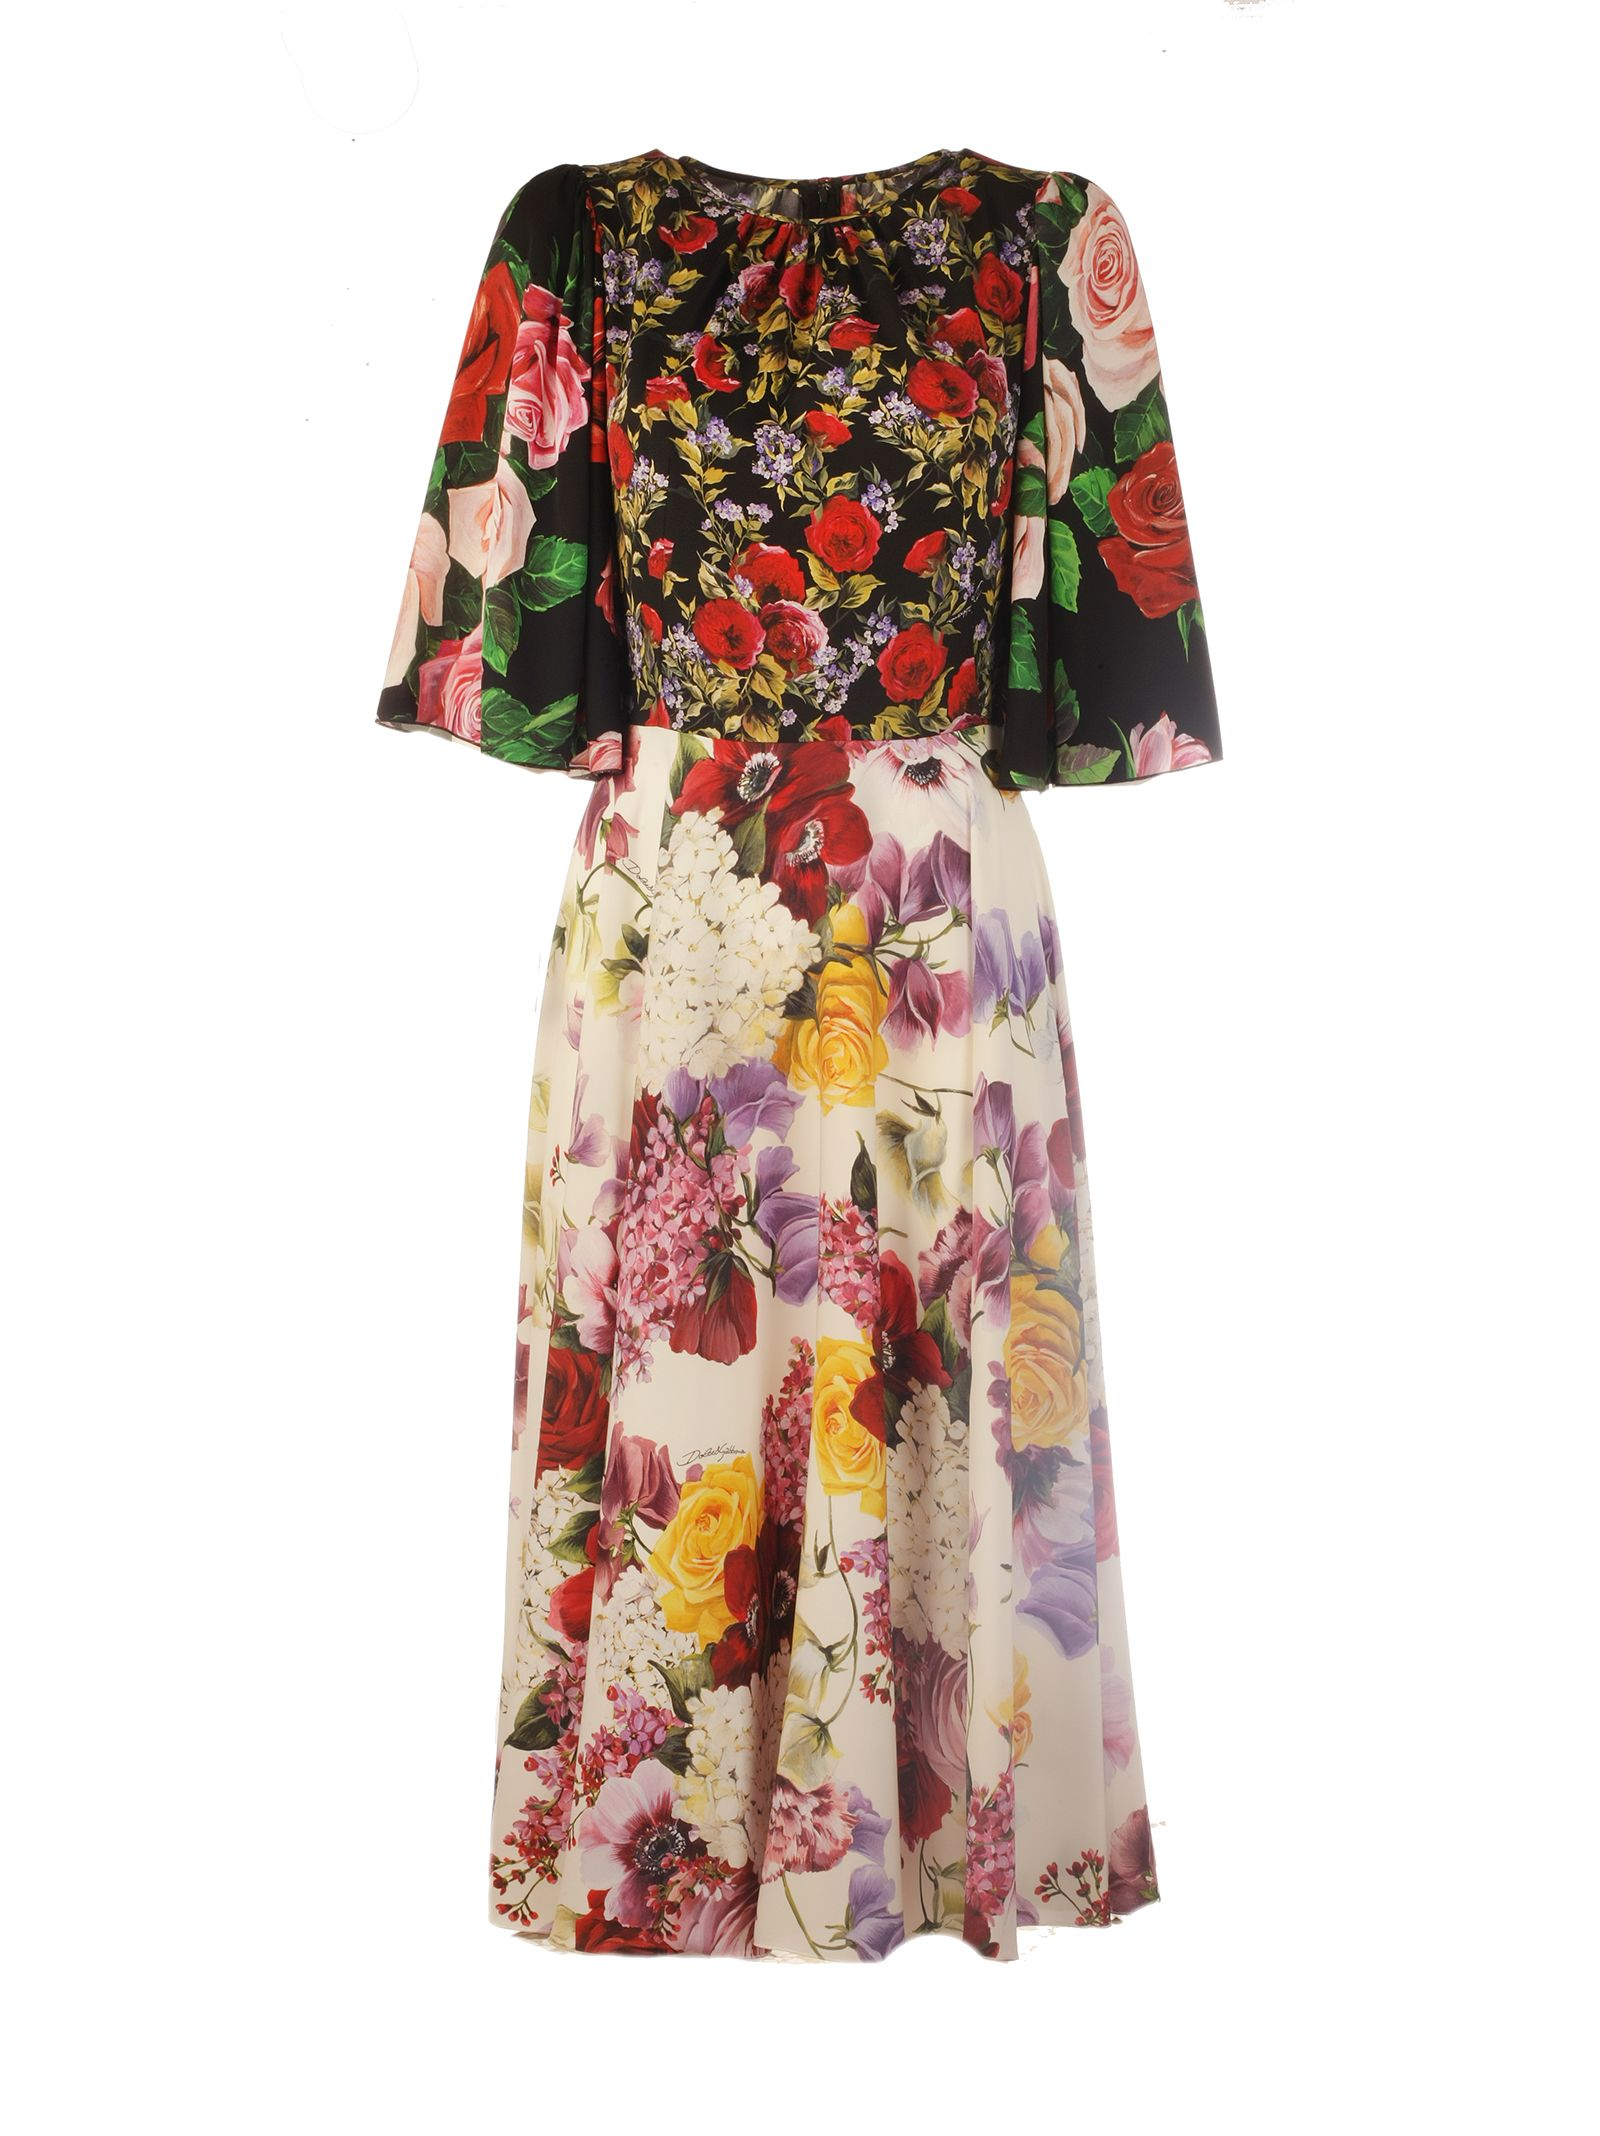 Dolce & Gabbana Pleated Floral Dress